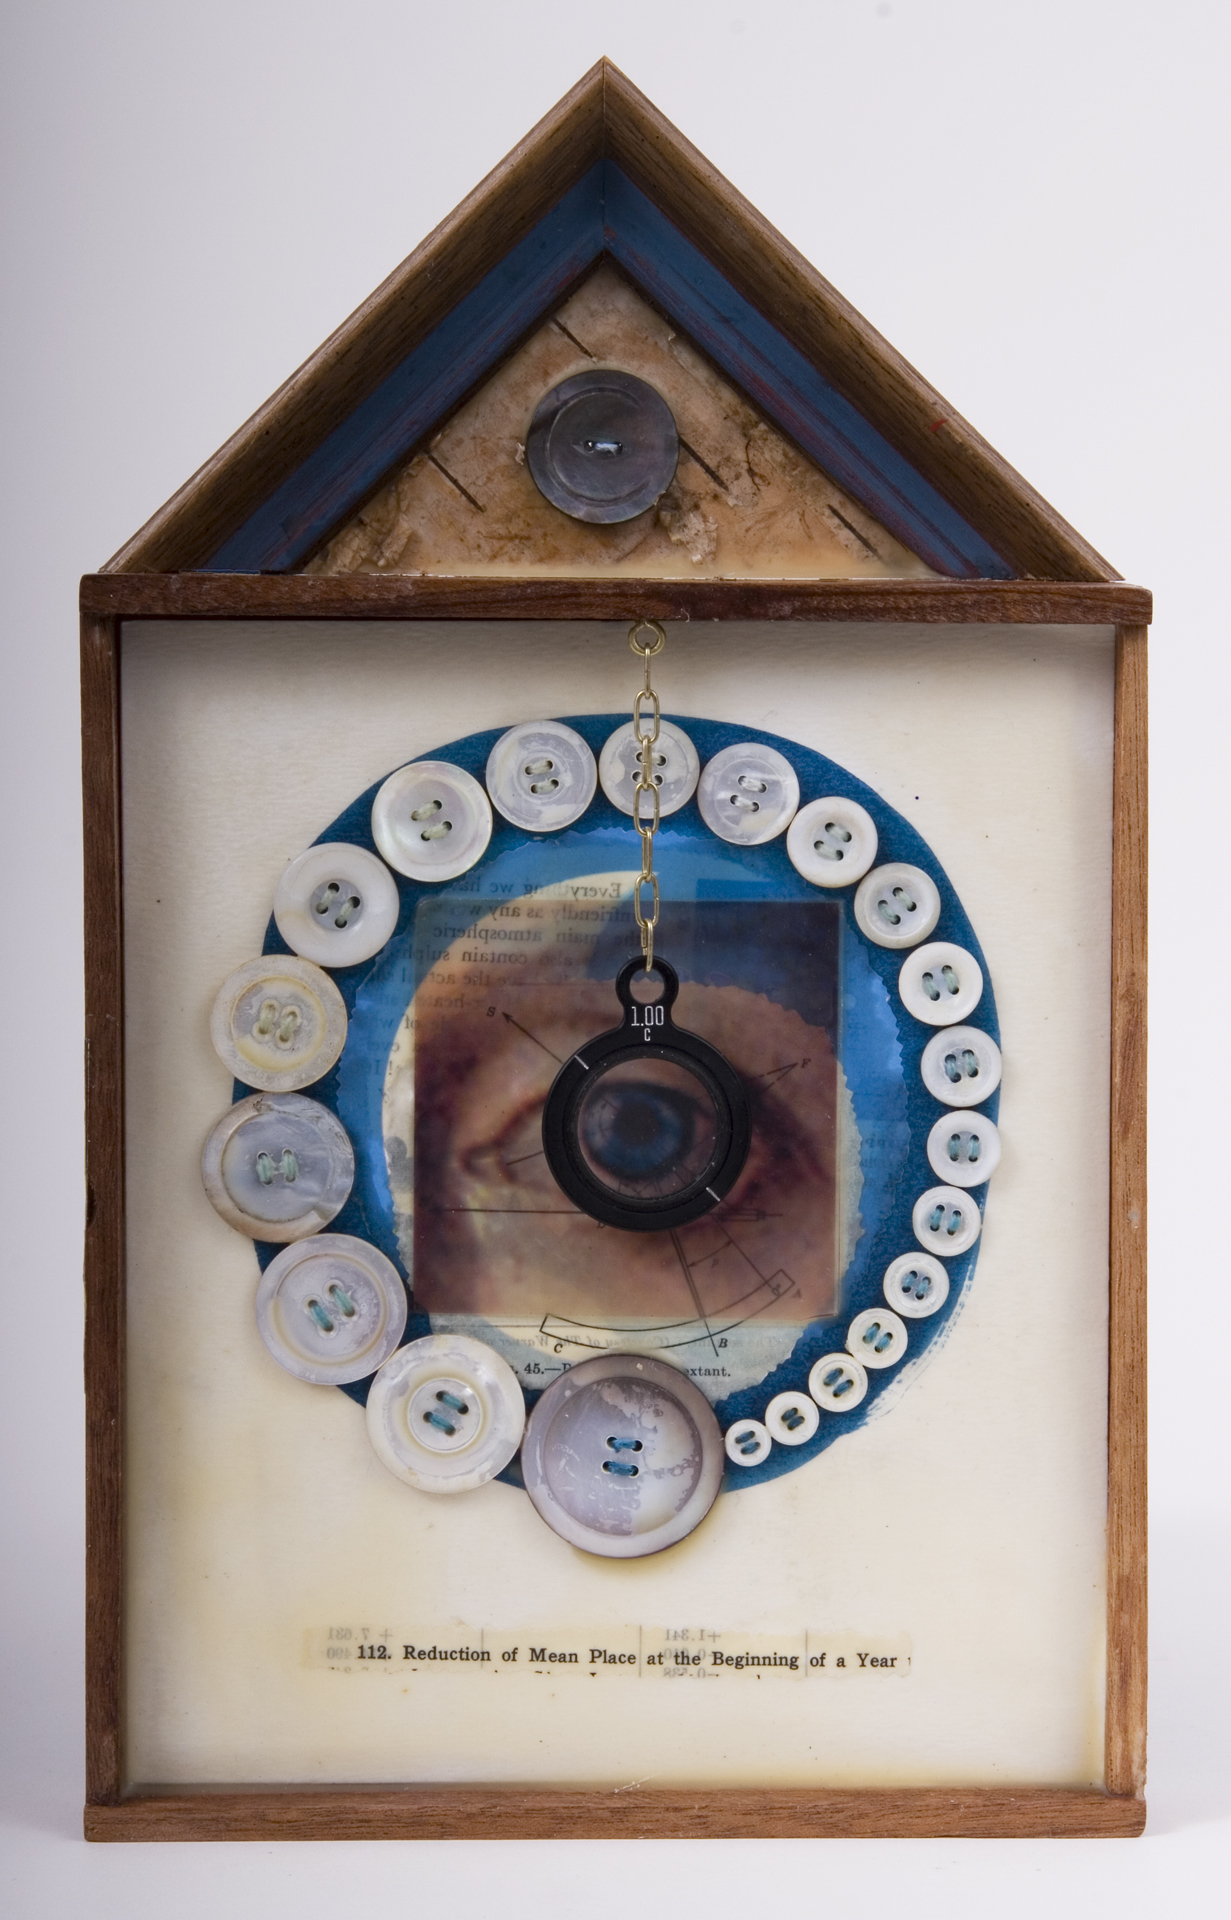 """12. Reduction of Mean Place at the Beginning of a Year\""